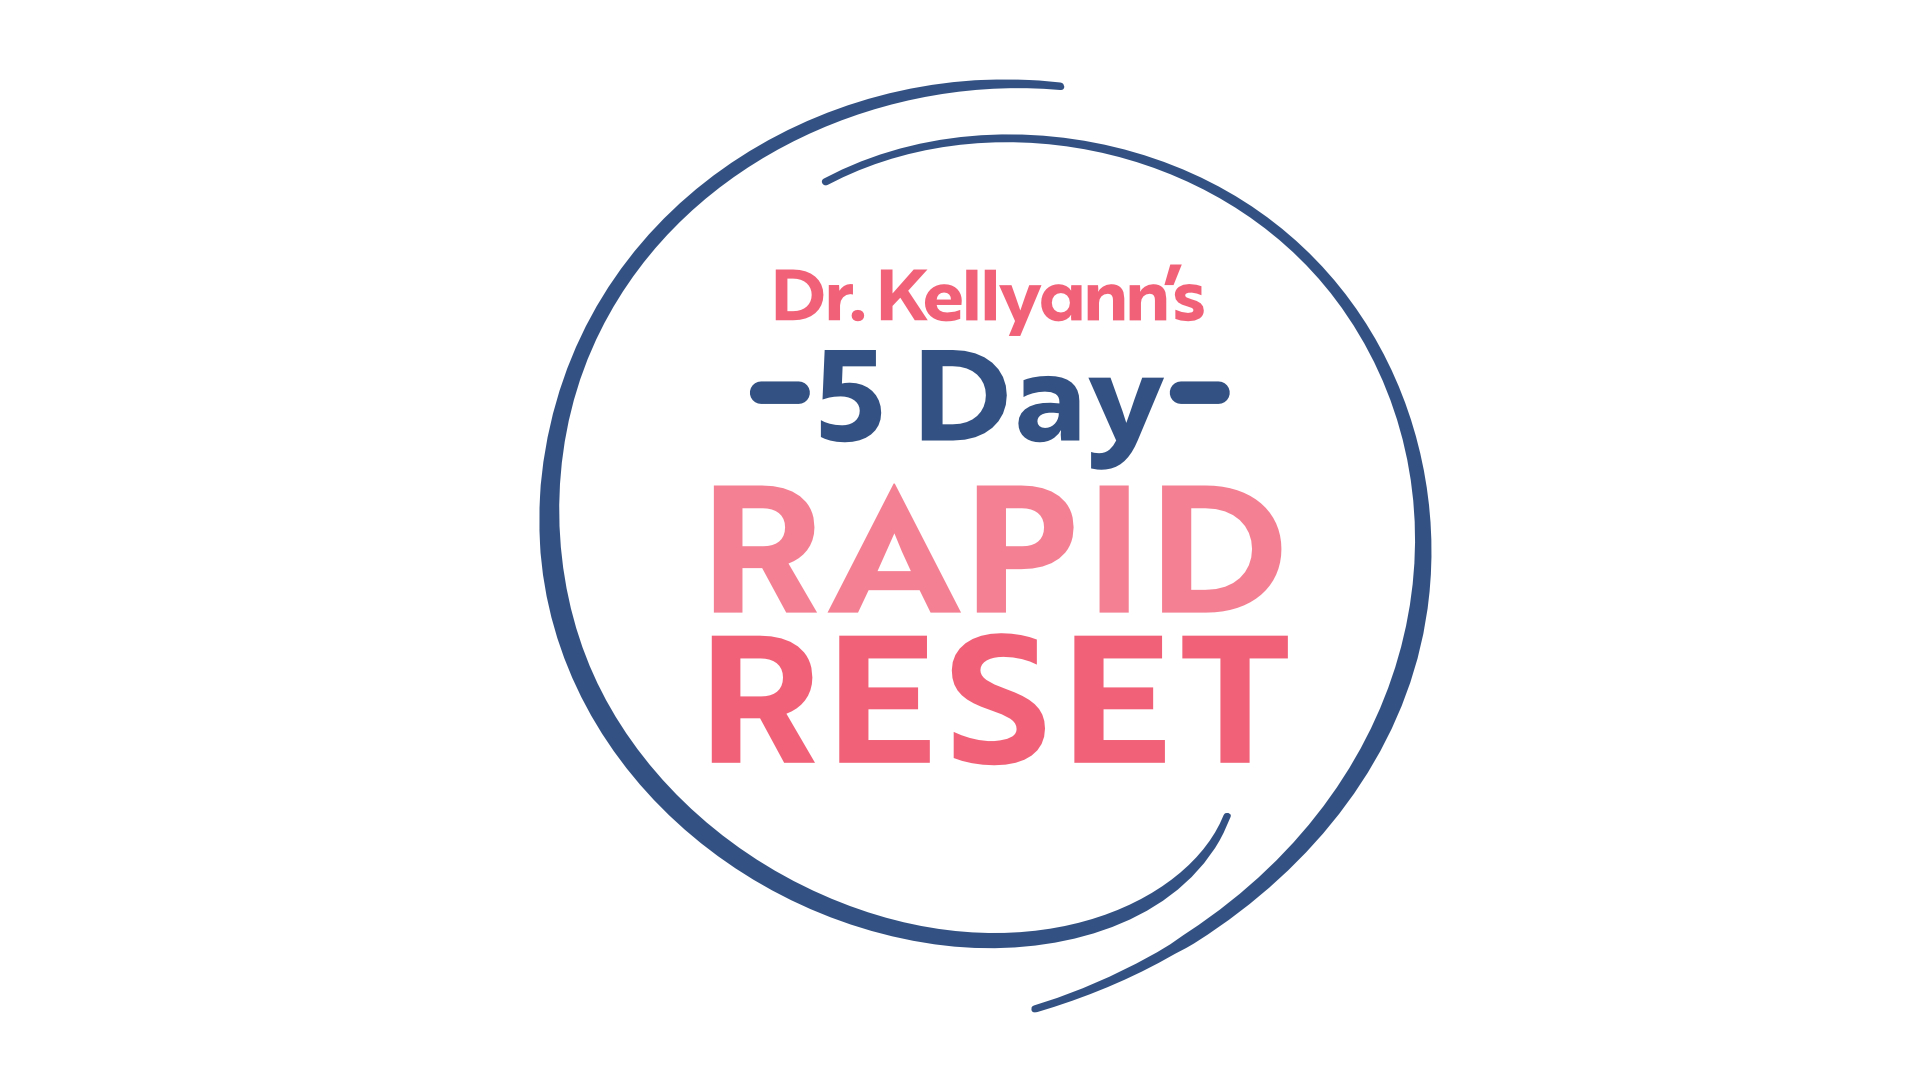 5 Day Rapid Reset with Dr. Kellyann